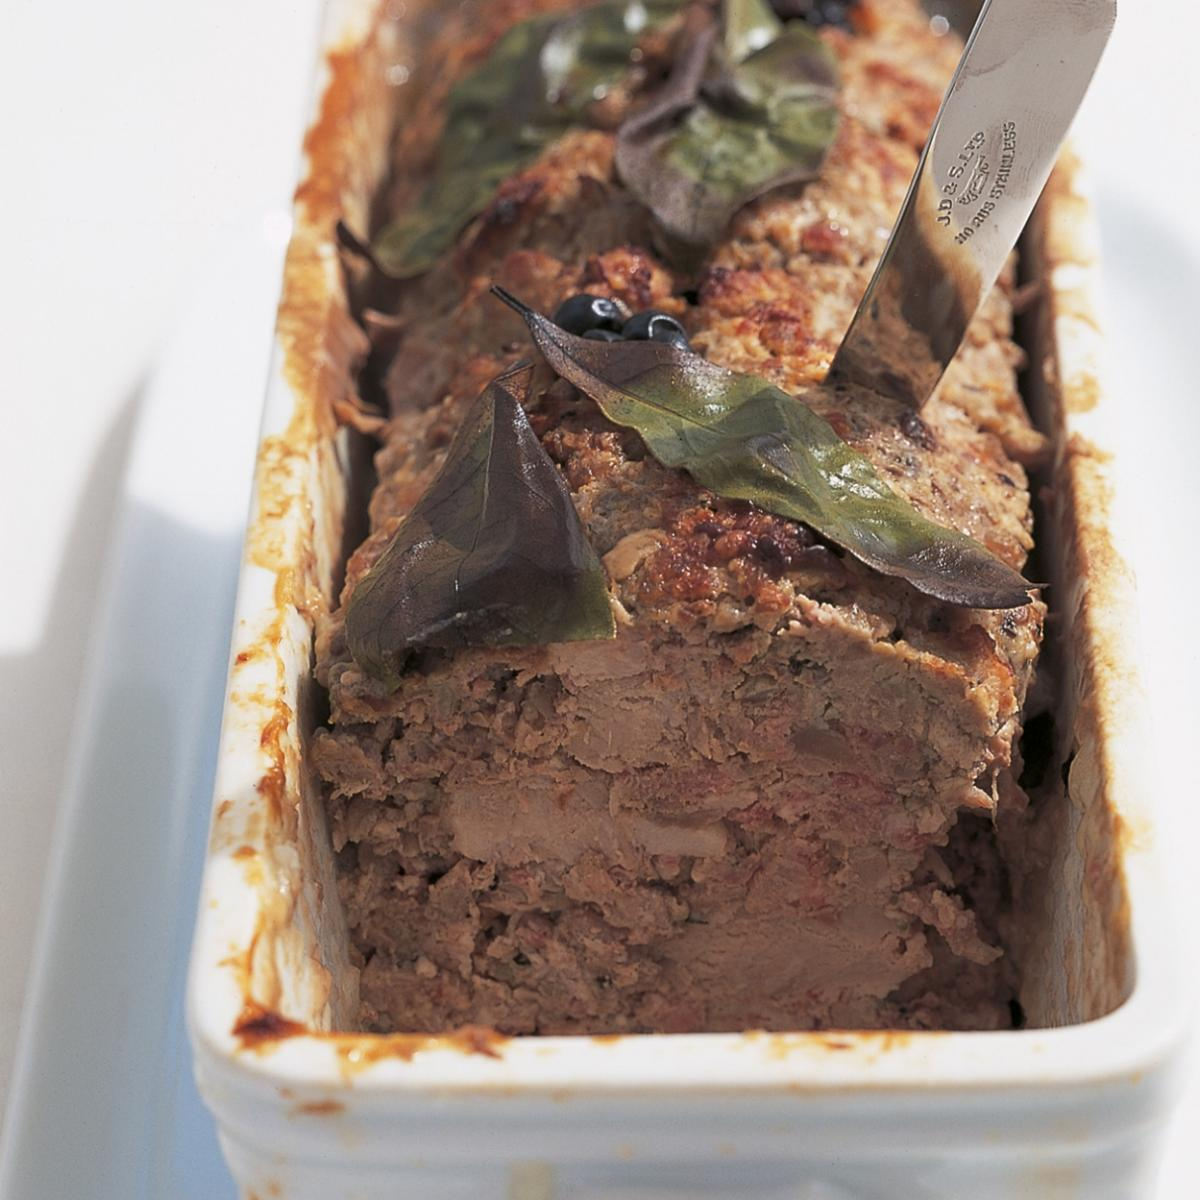 A picture of Delia's Coarse Country Pate recipe